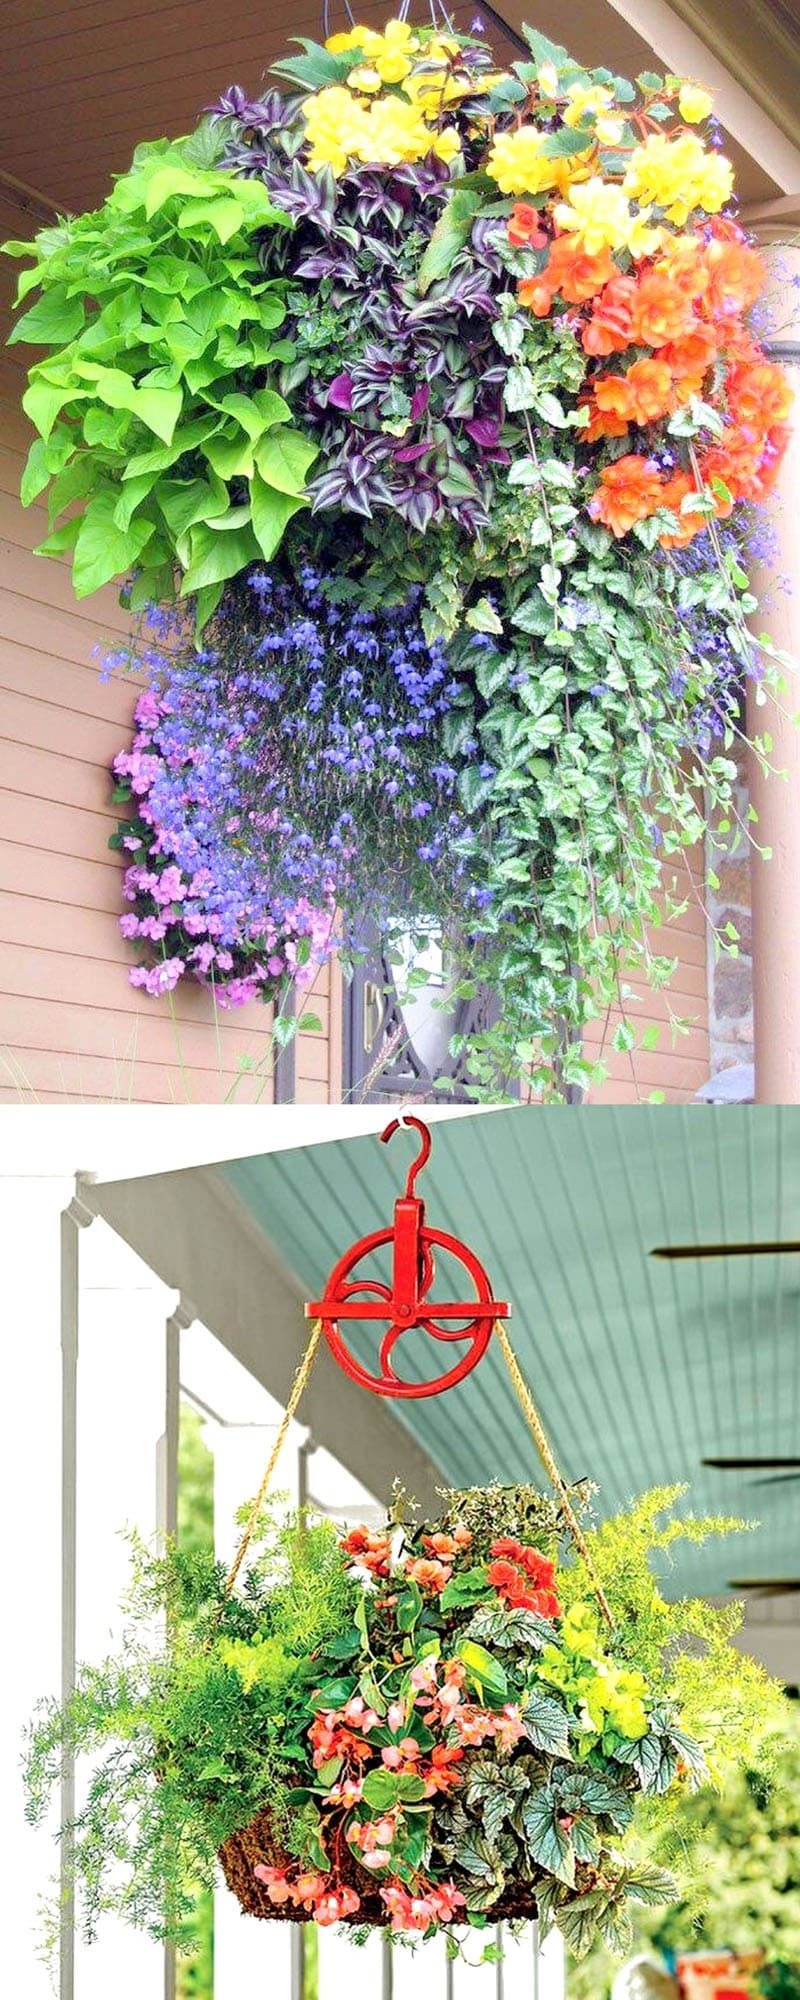 how to plant beautiful flower hanging baskets 20 best hanging basket plants flower basket. Black Bedroom Furniture Sets. Home Design Ideas